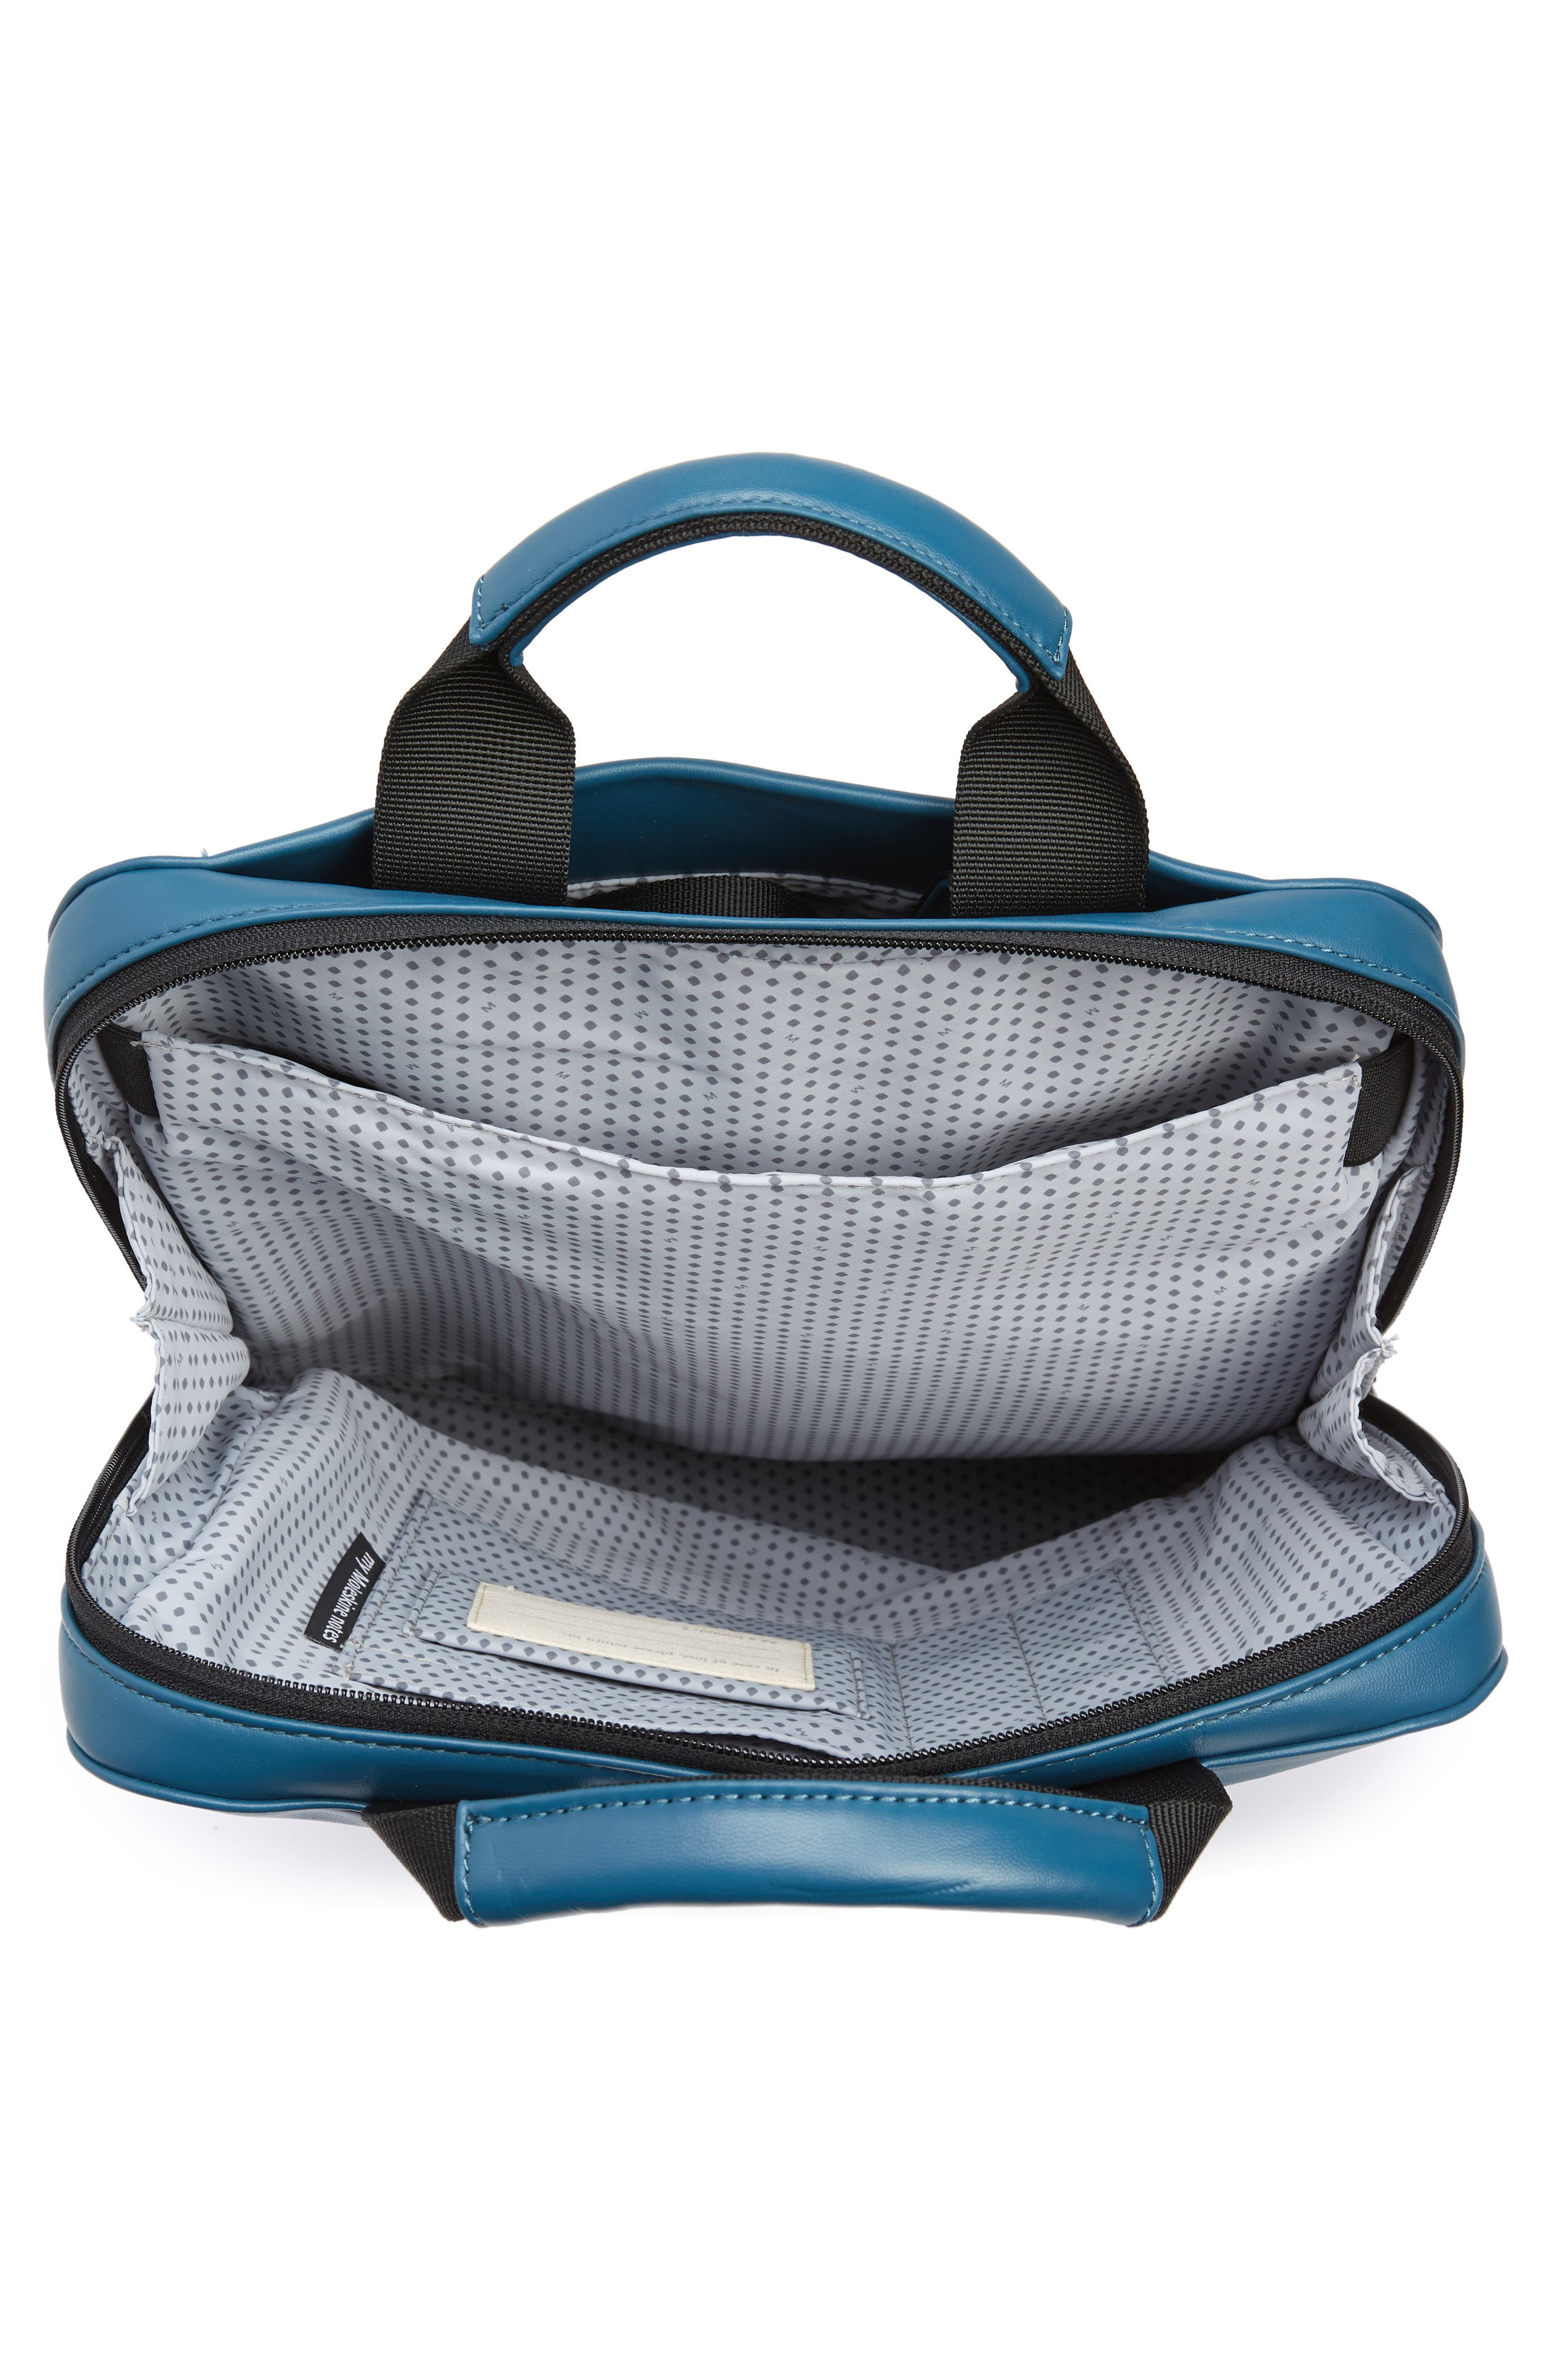 ID Vertical Device Bag,                             Alternate thumbnail 4, color,                             460